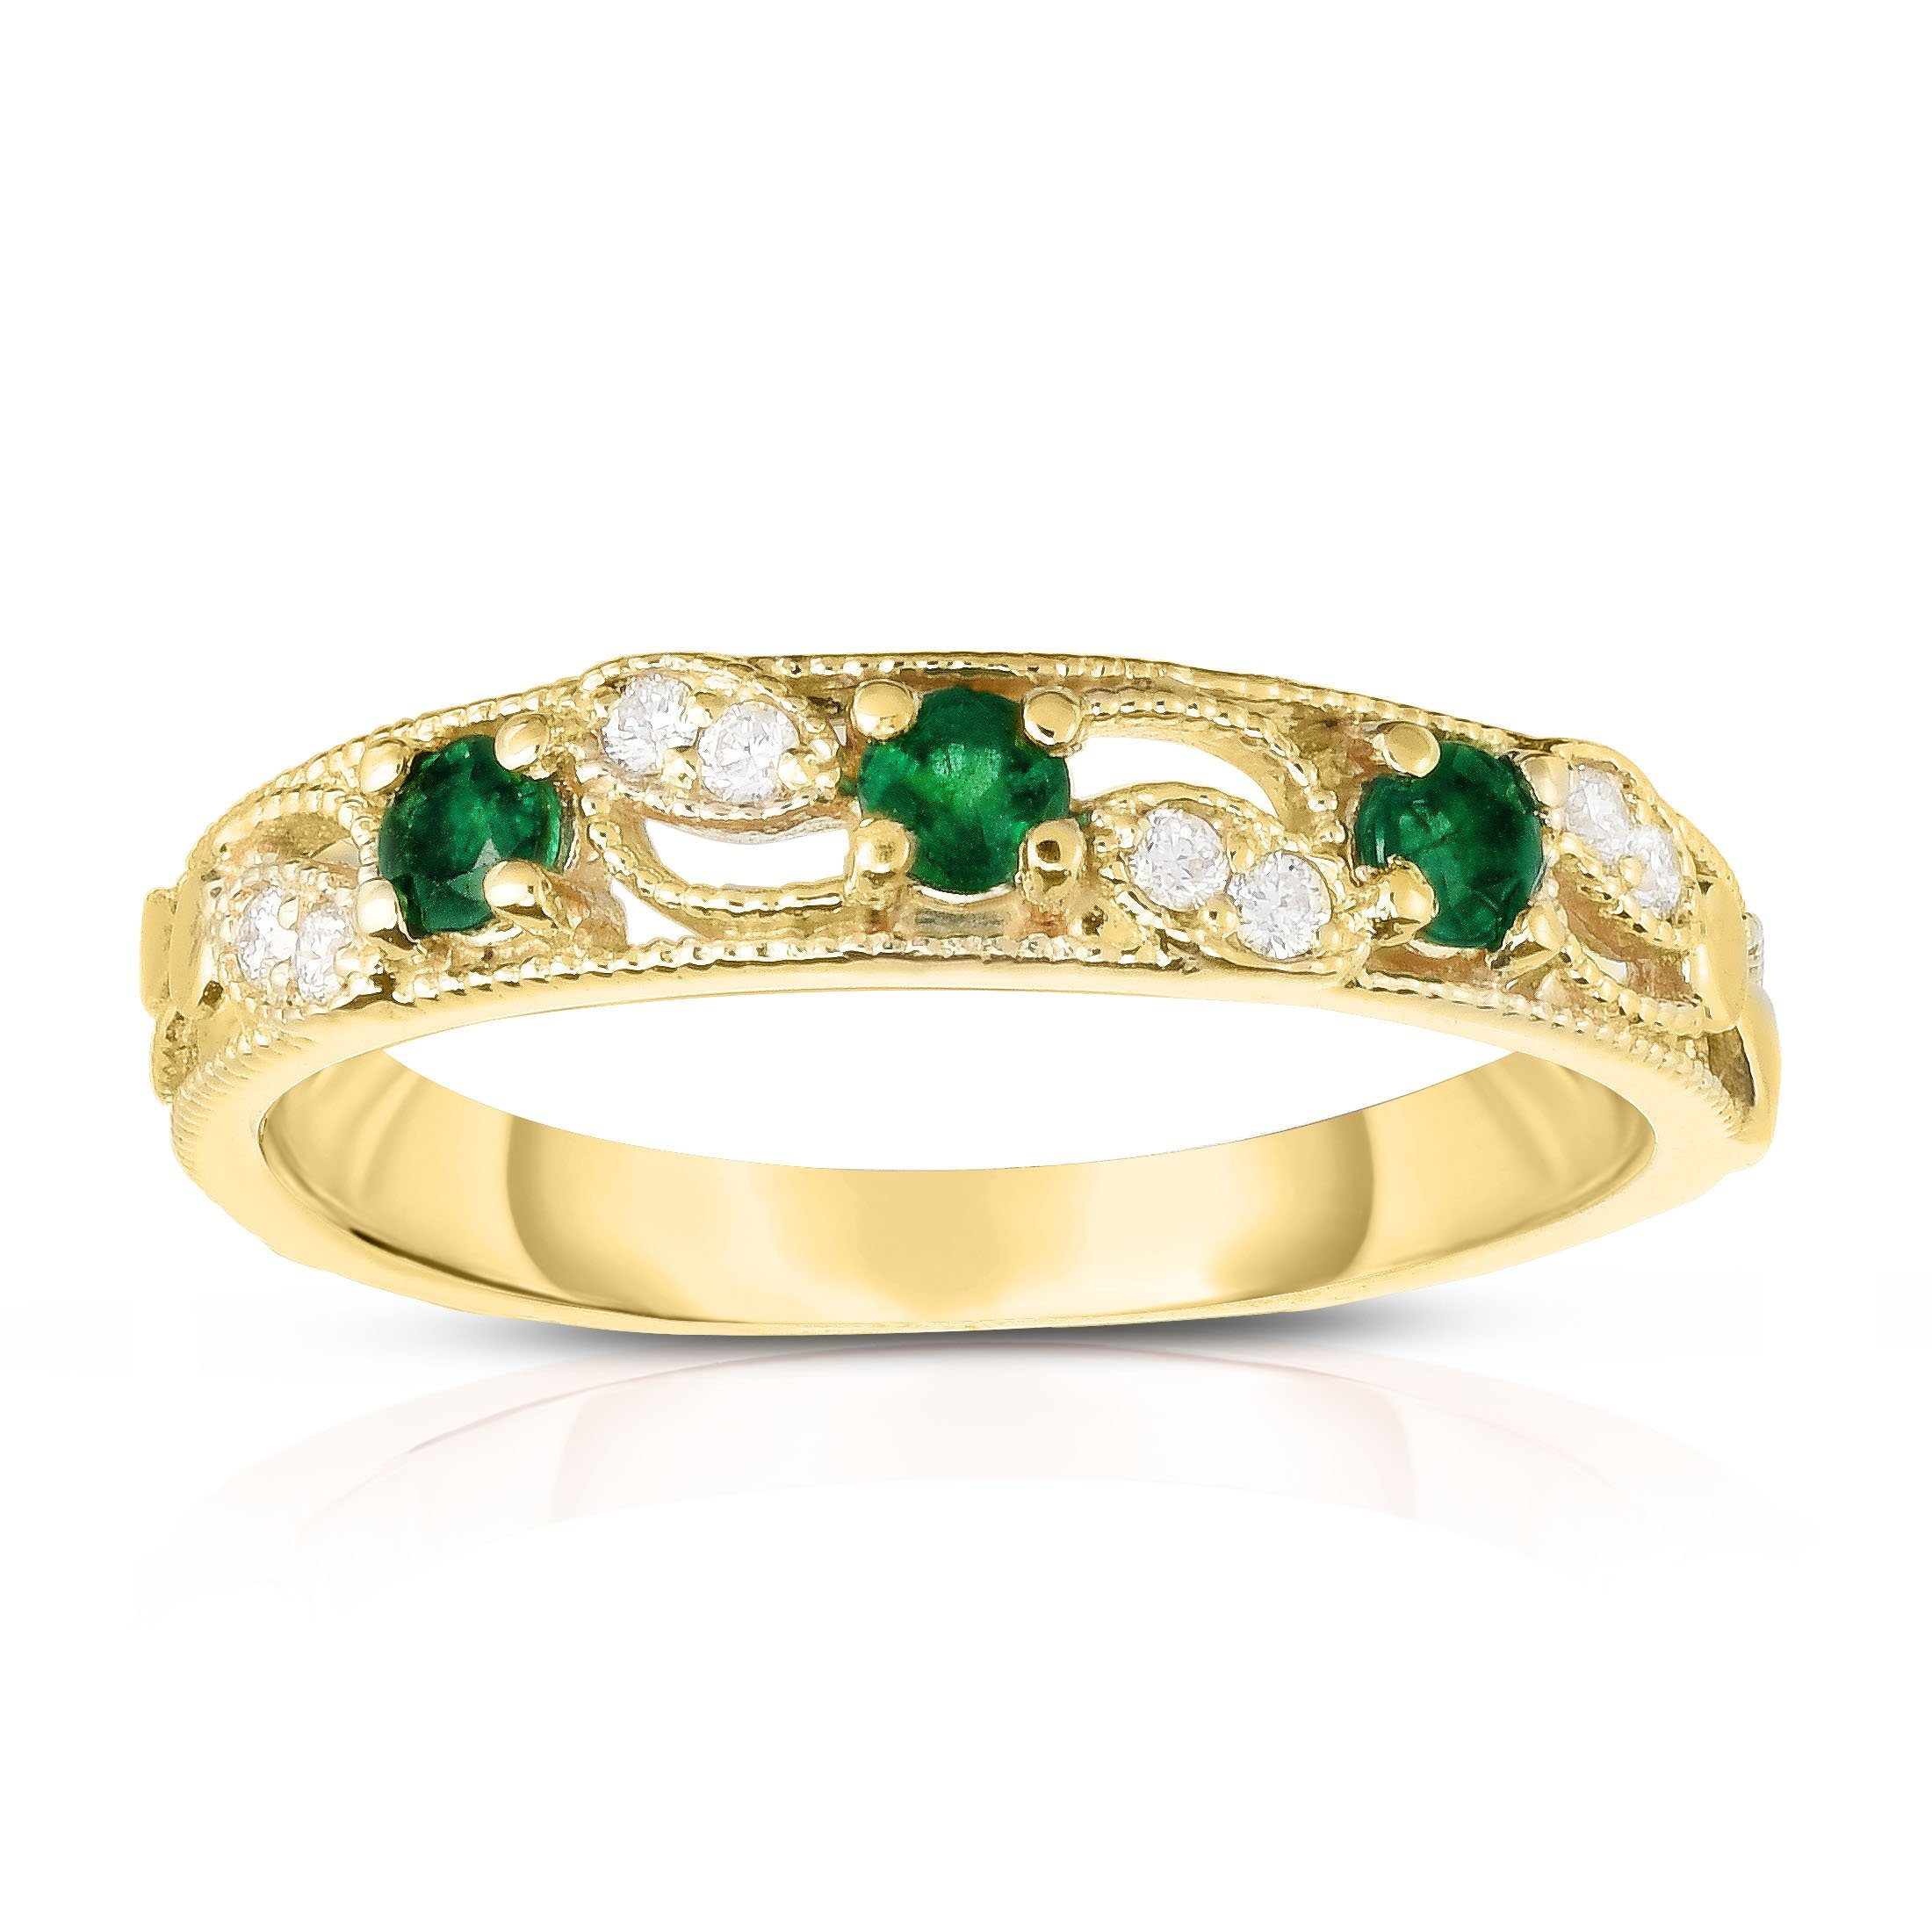 Noray Designs 14K Yellow Gold Emerald & Diamond (0.06 Ct, G-H, SI2-I1 Clarity) Stackable Ring